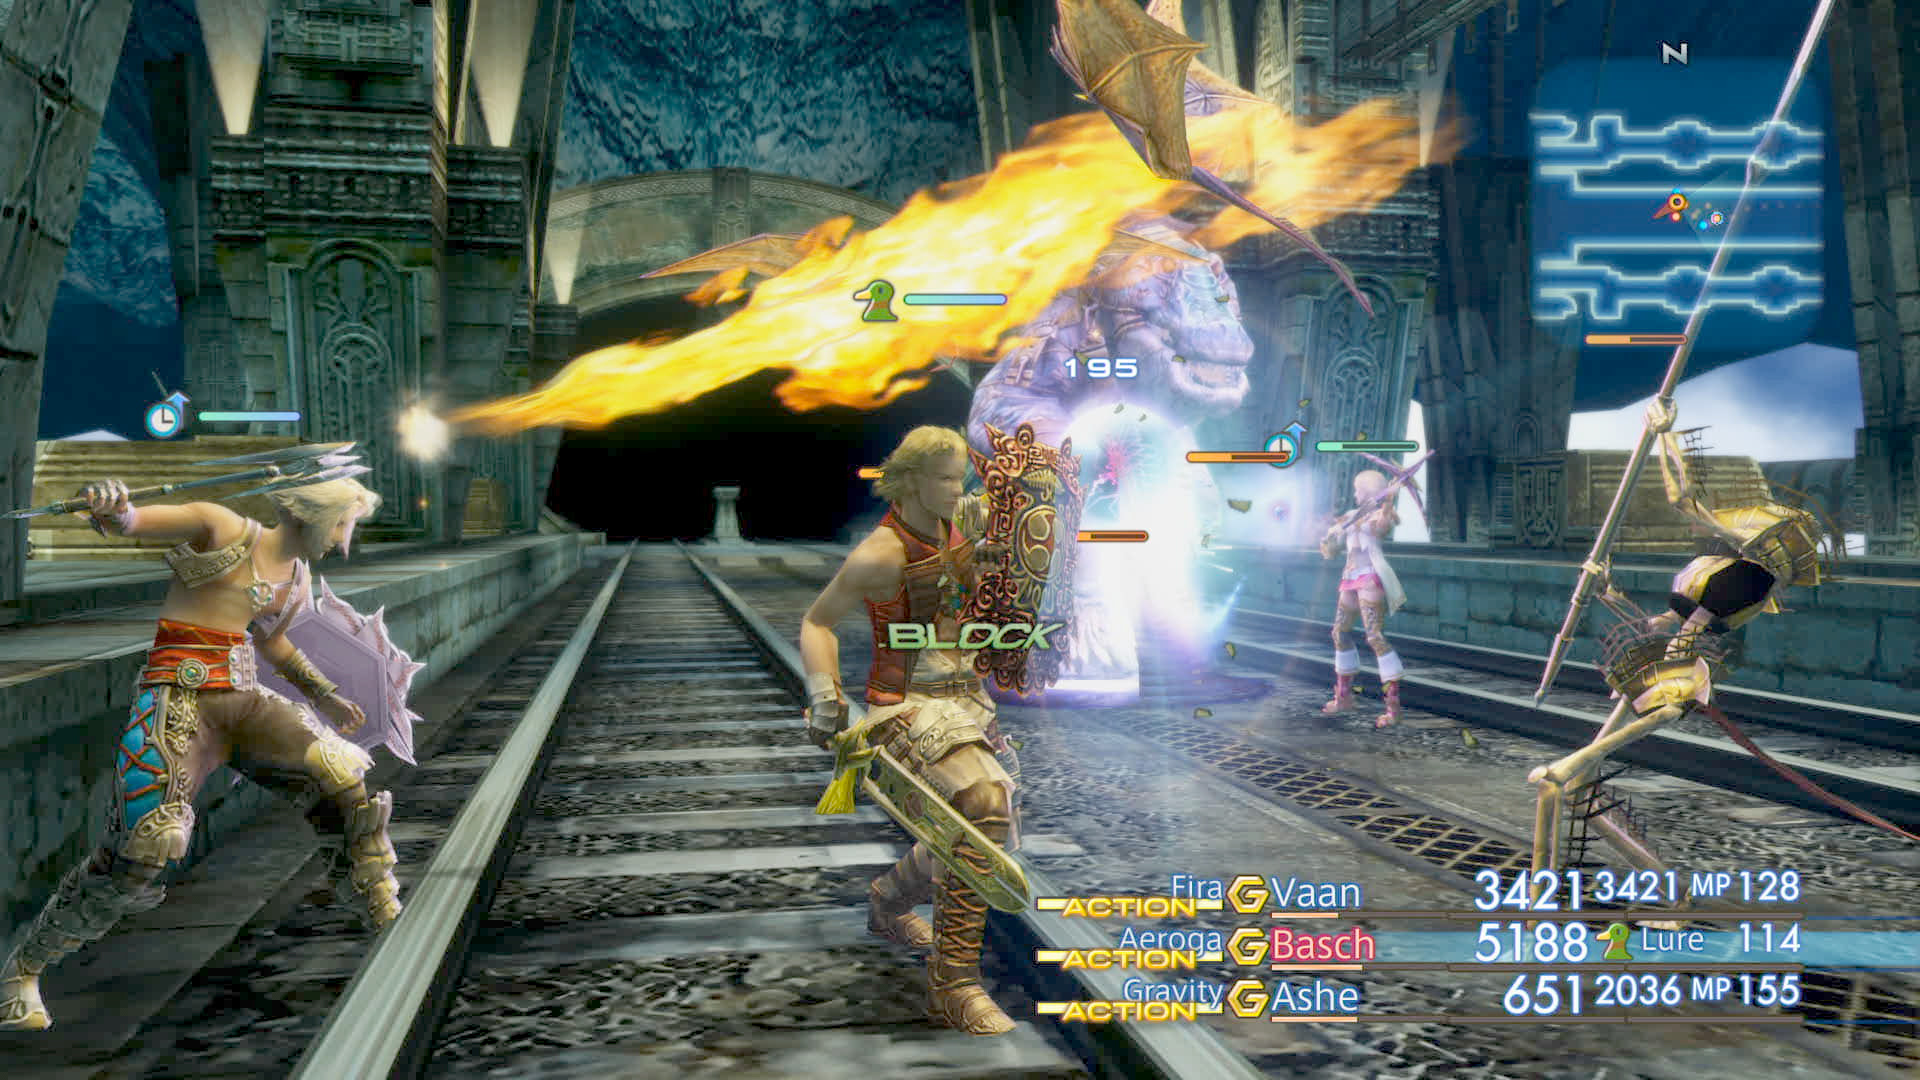 Here S 35 Glorious Minutes Of Final Fantasy Xii The Zodiac Age